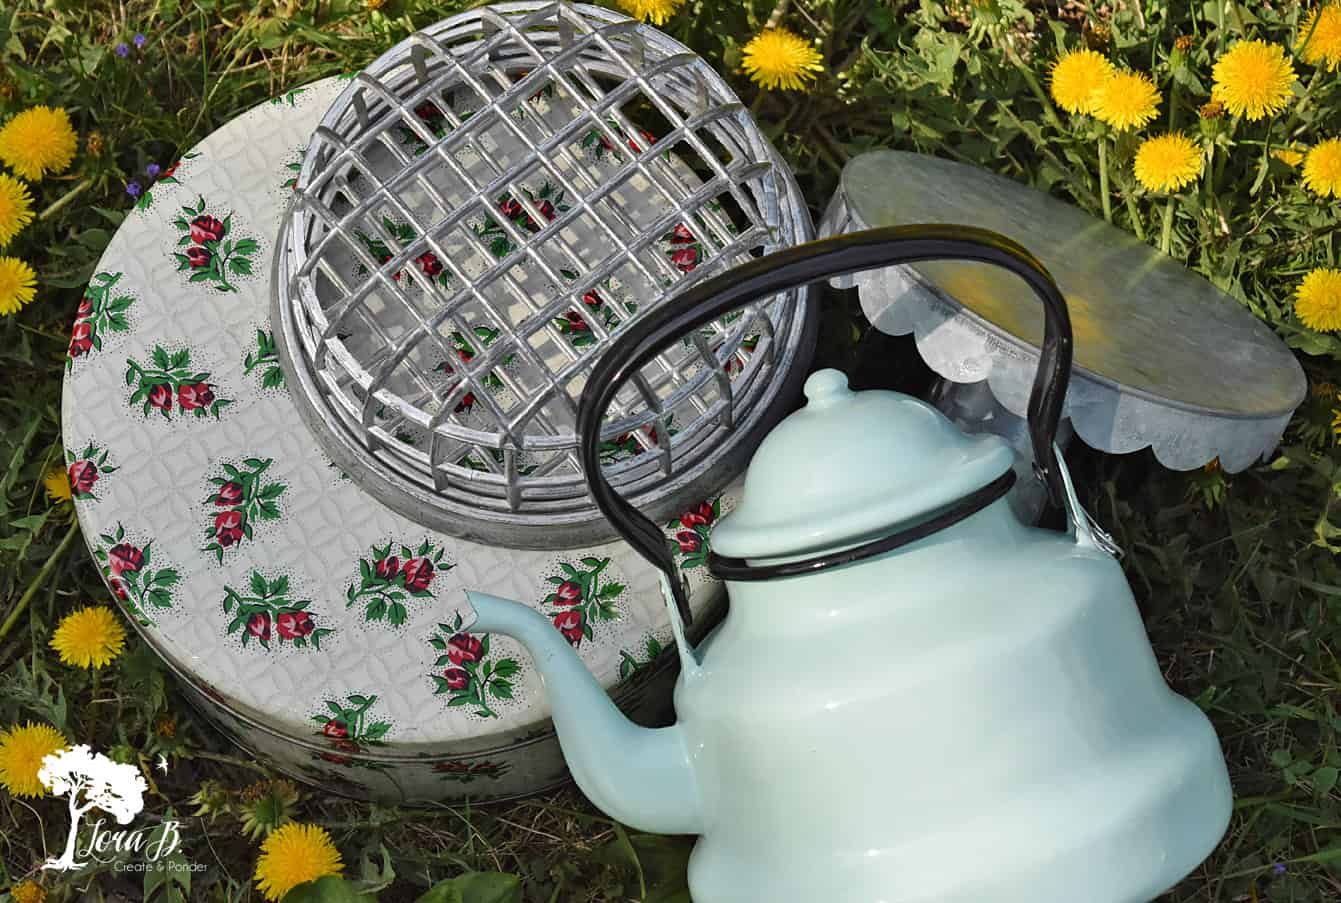 Vintage picnic items